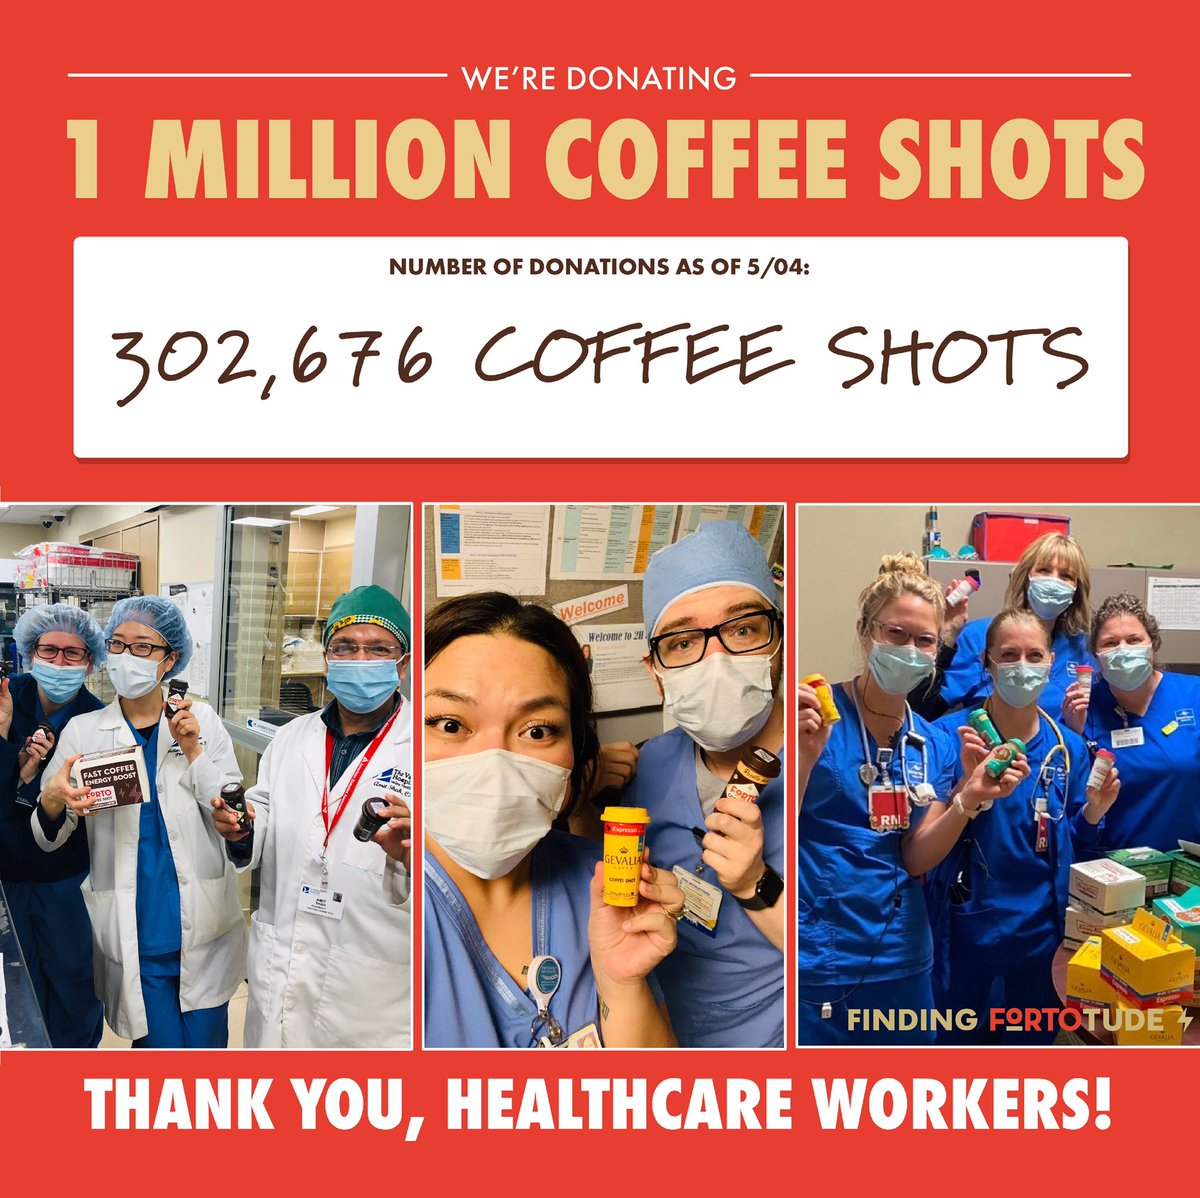 With the help of our co-owner, @SHAQ - we are committed to donating 1 million coffee shots to healthcare professionals and first responders. Visit the link in our bio to learn more about how you or your organization can help us fuel healthcare workers on the frontline